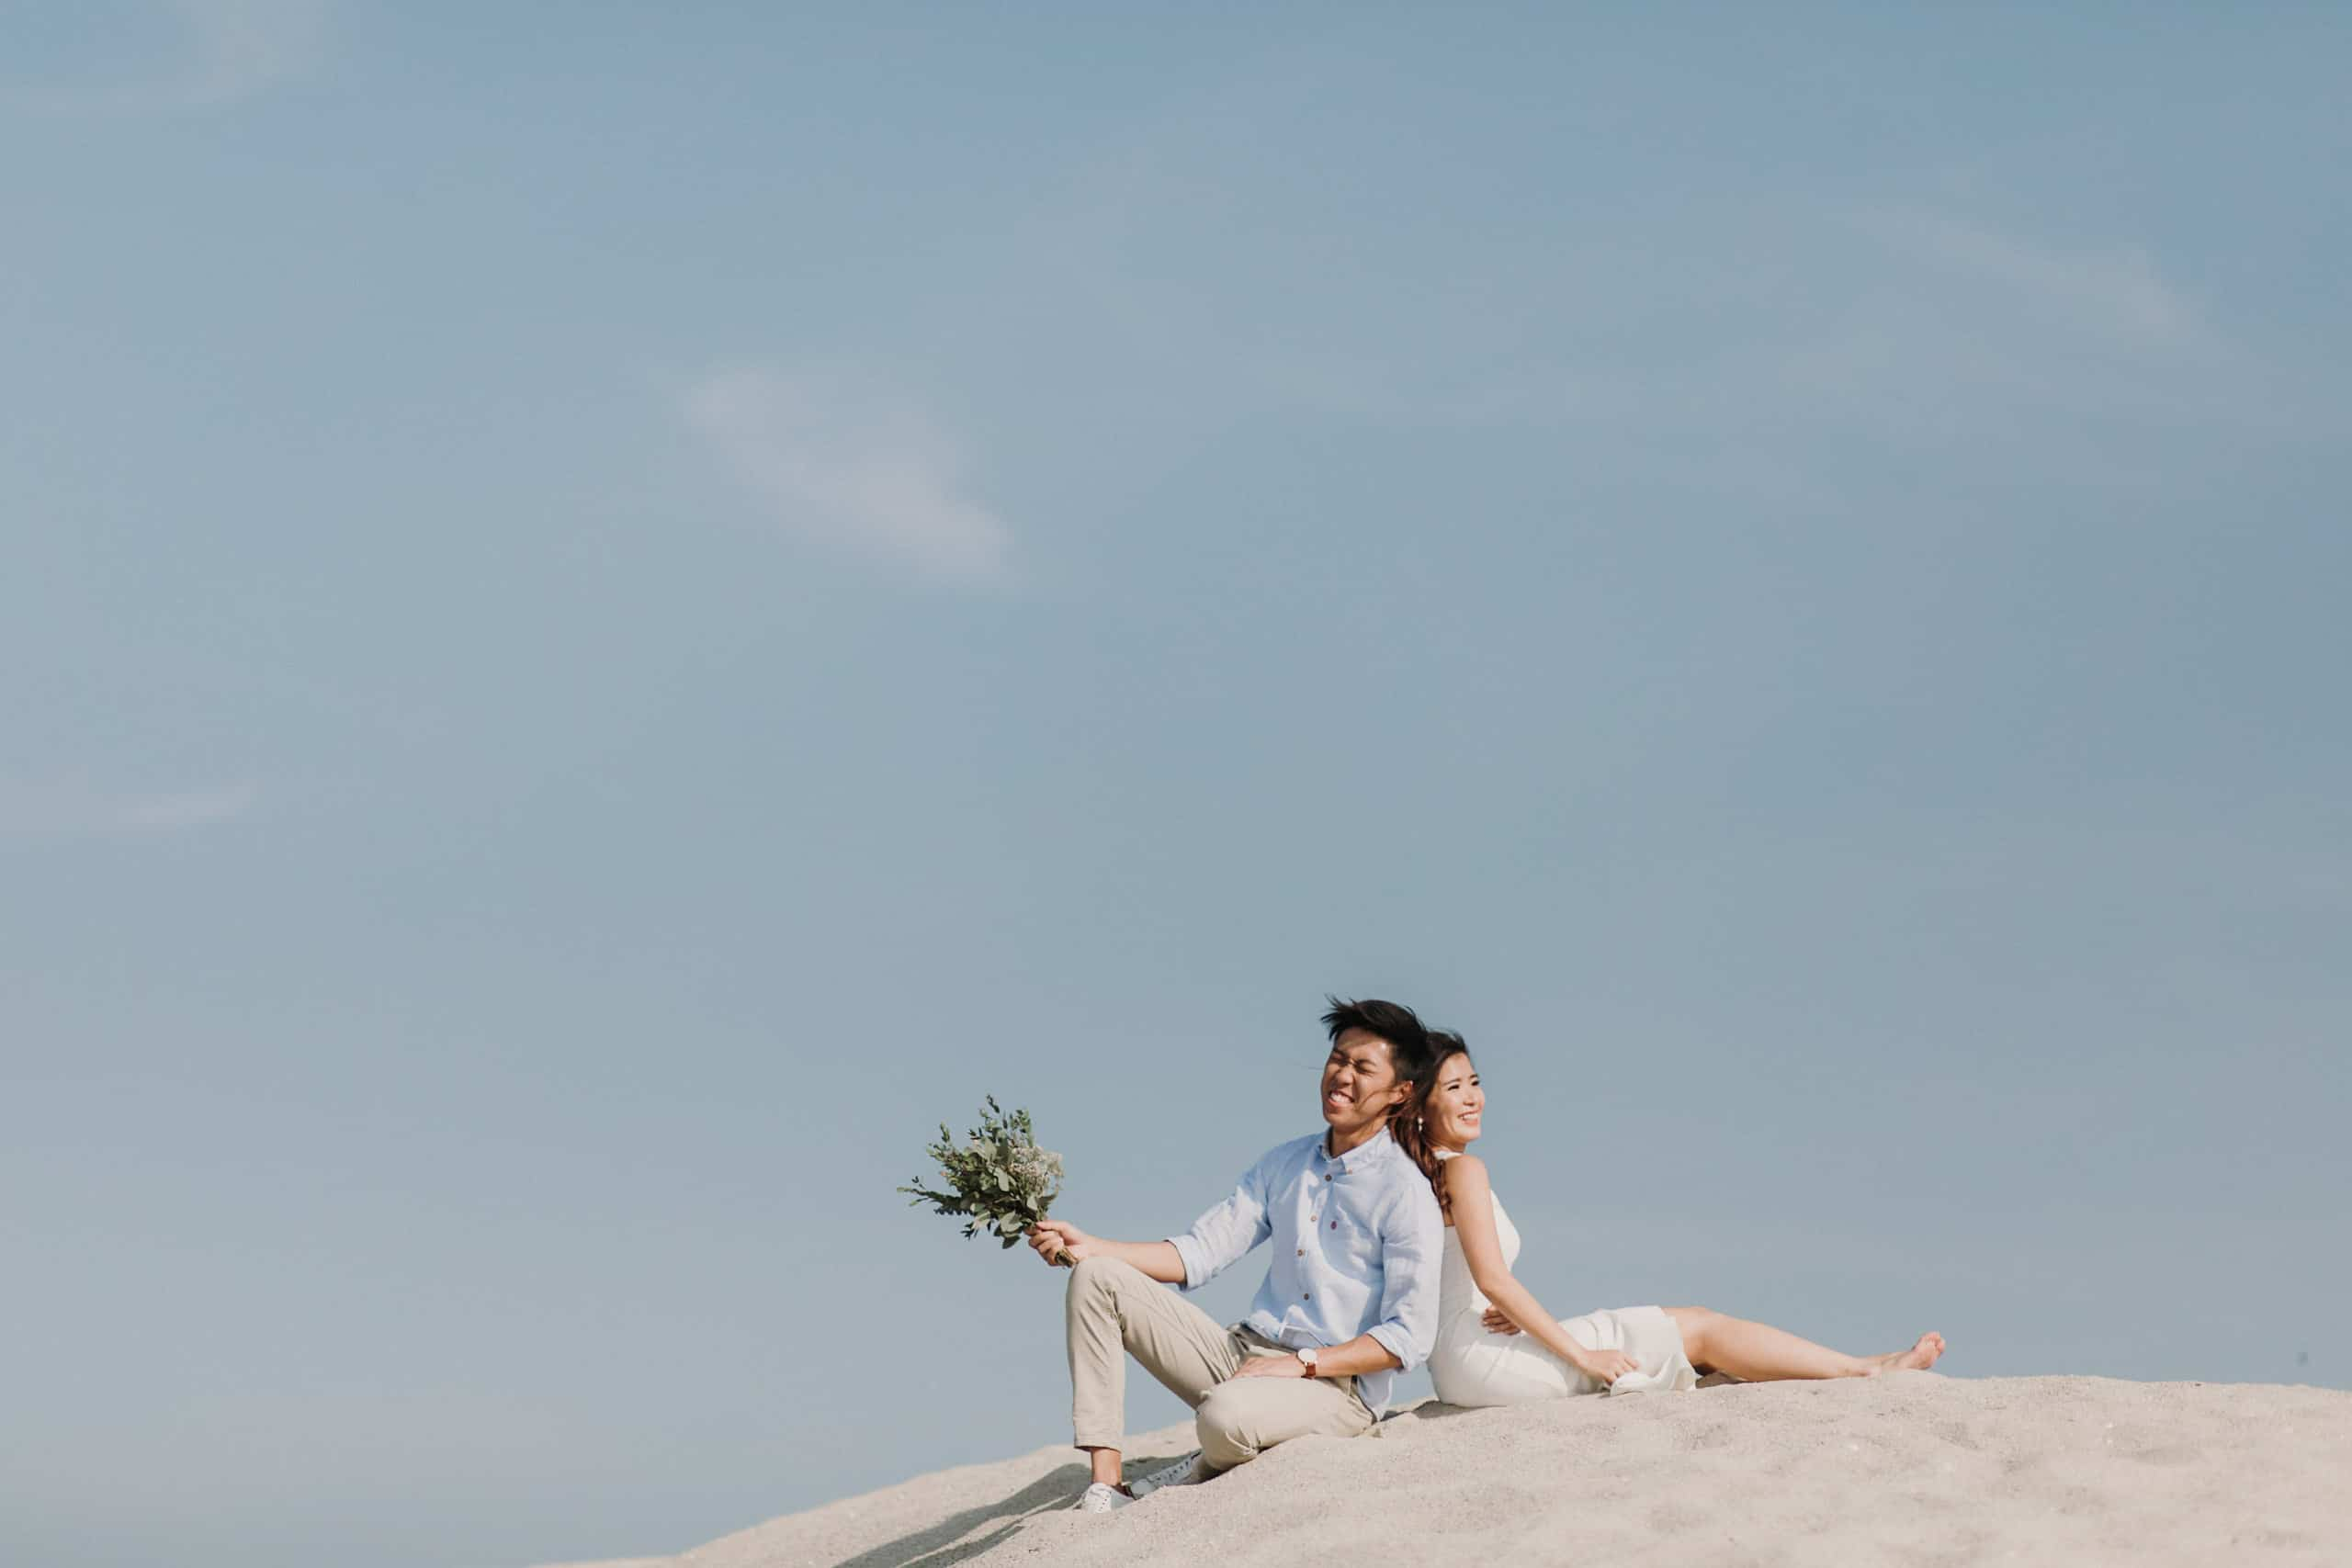 cliff choong destination portrait and wedding photographer malaysia kuala lumpur prewedding sunset golden sunrise shots bride and groom melaka desert couple kiss romantic intimate moment scene white sands